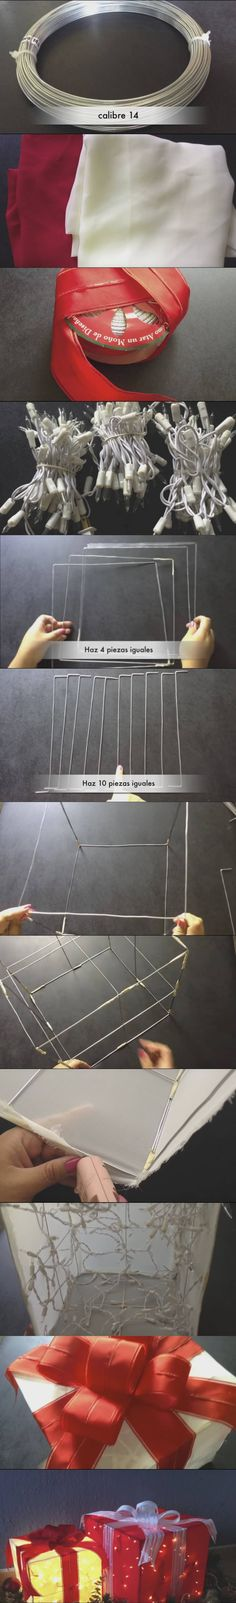 make your own light present using wire, fabric and hot glue gun